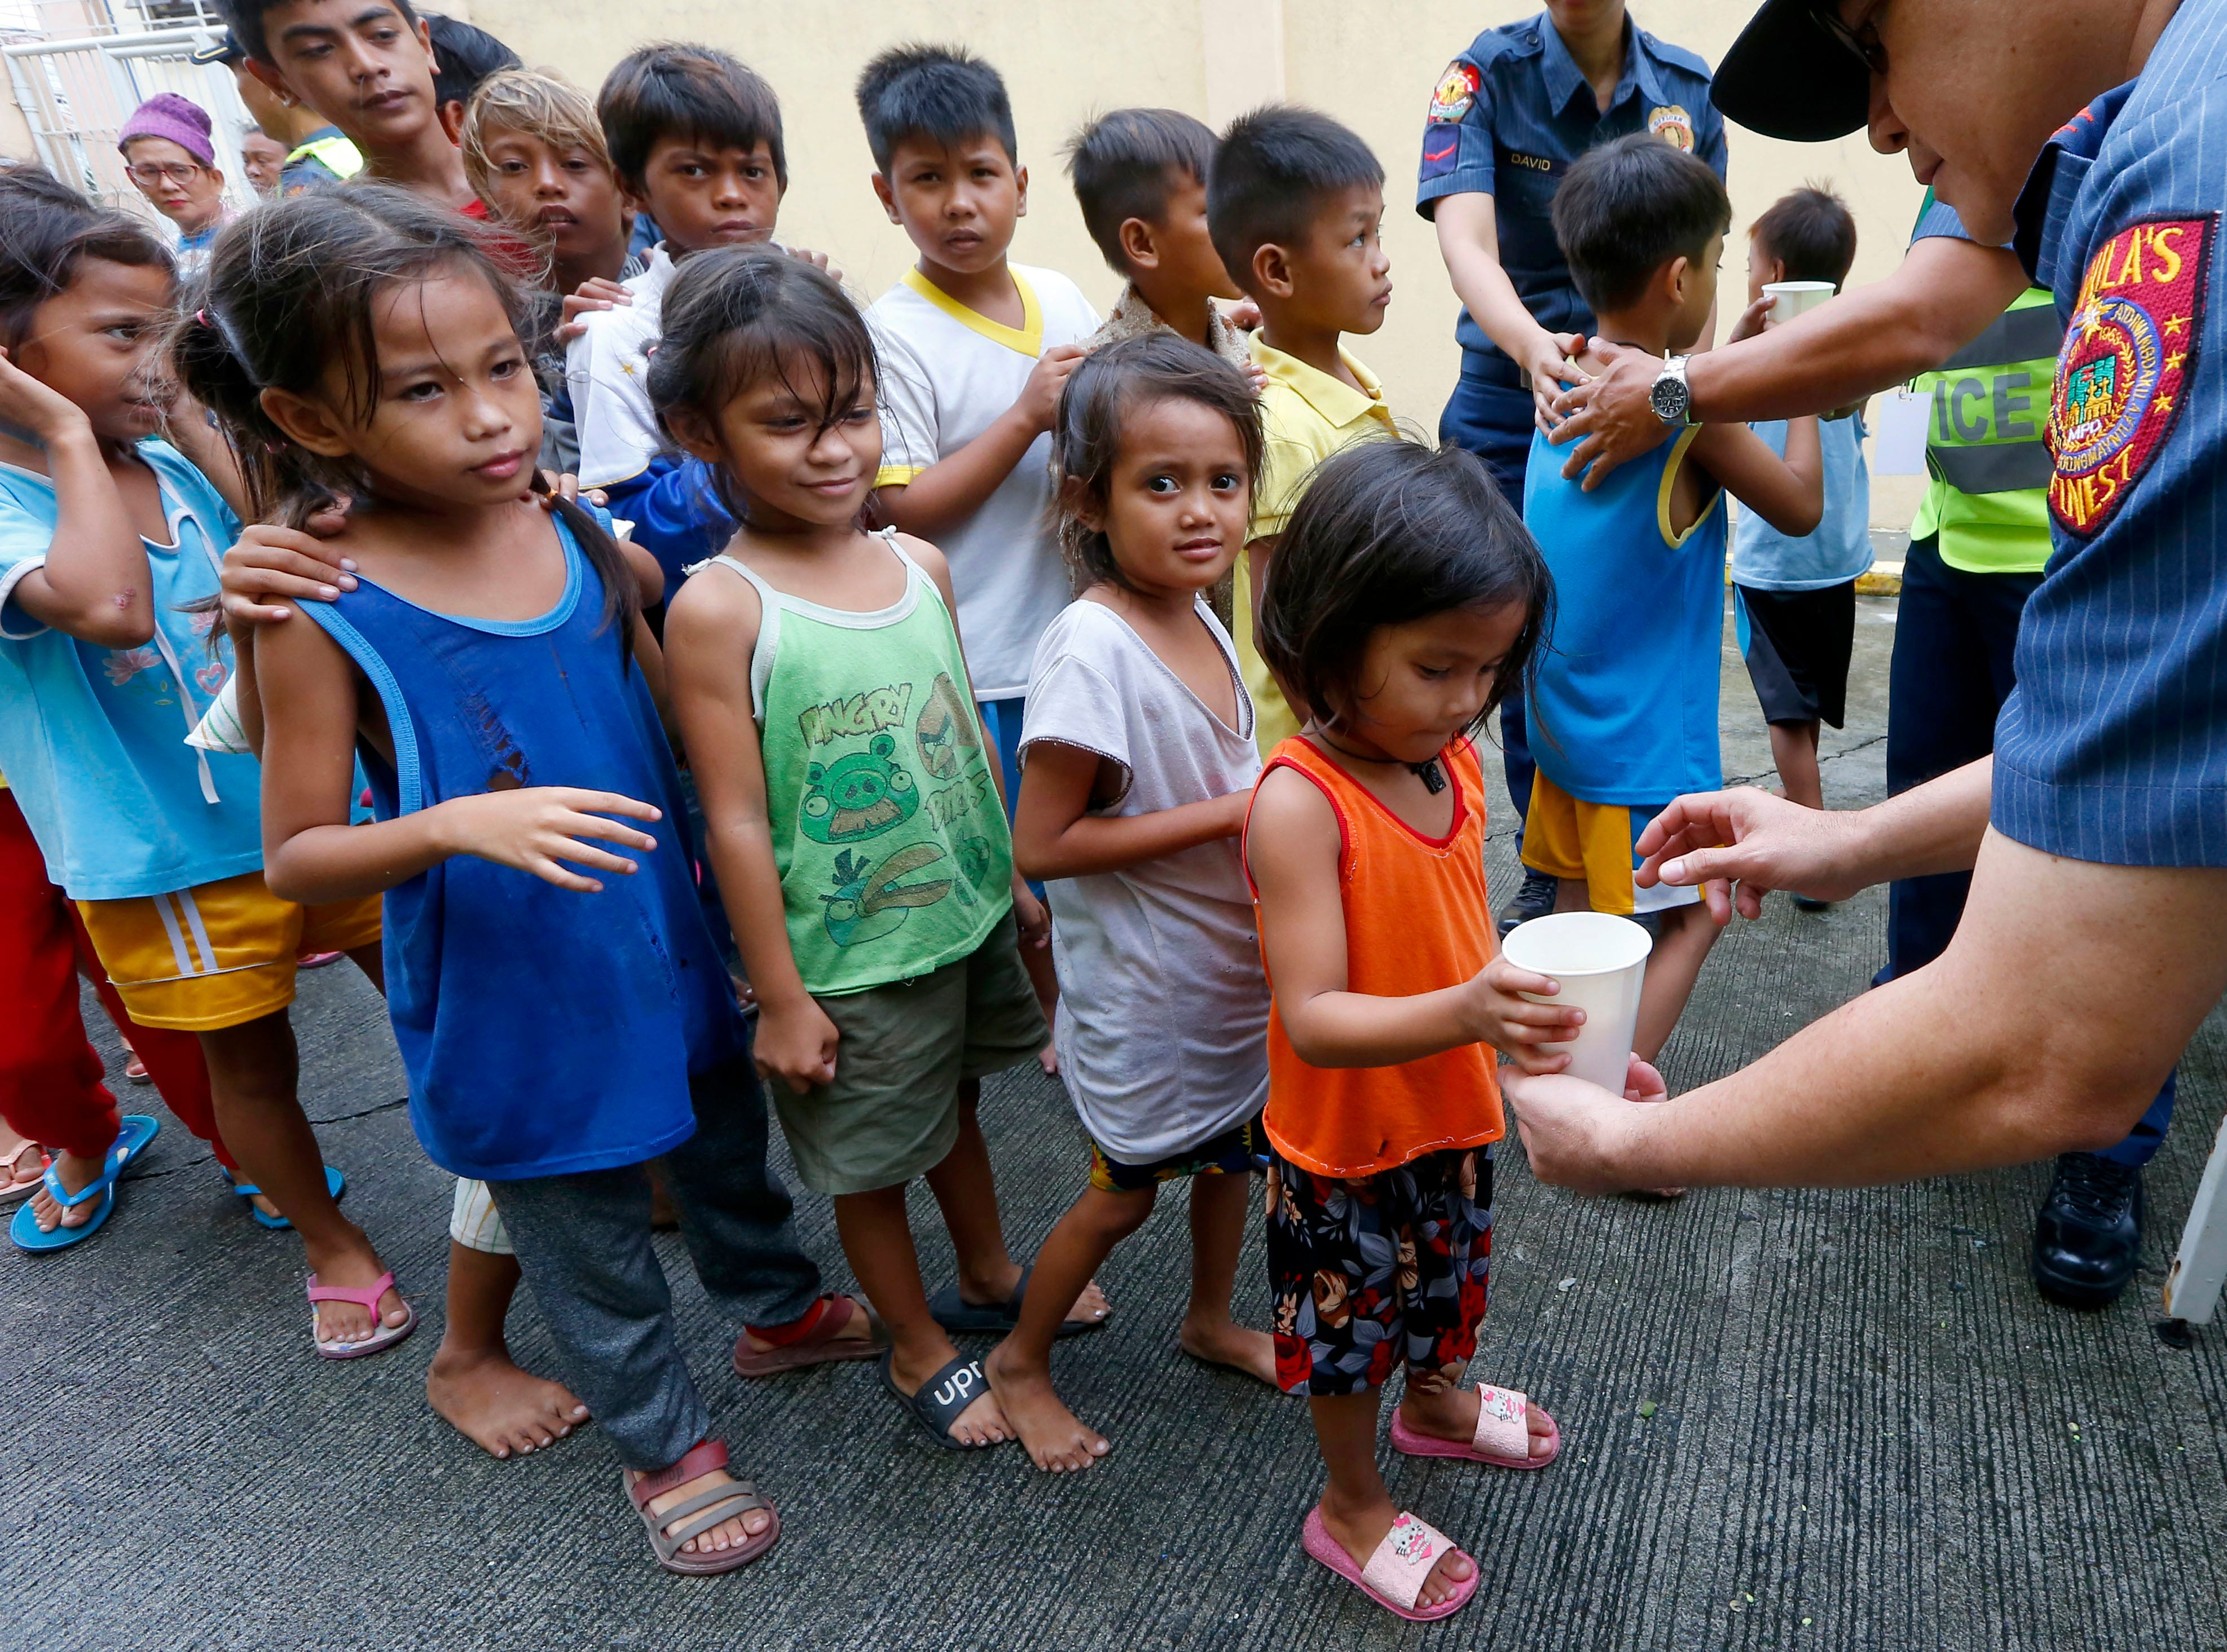 Manila police give out rice porridge to residents living along the coastal community of Baseco as they evacuate during the onslaught of Typhoon Mangkhut which barreled into northeastern Philippines before dawn Saturday, Sept. 15, 2018 in Manila, Philippines.